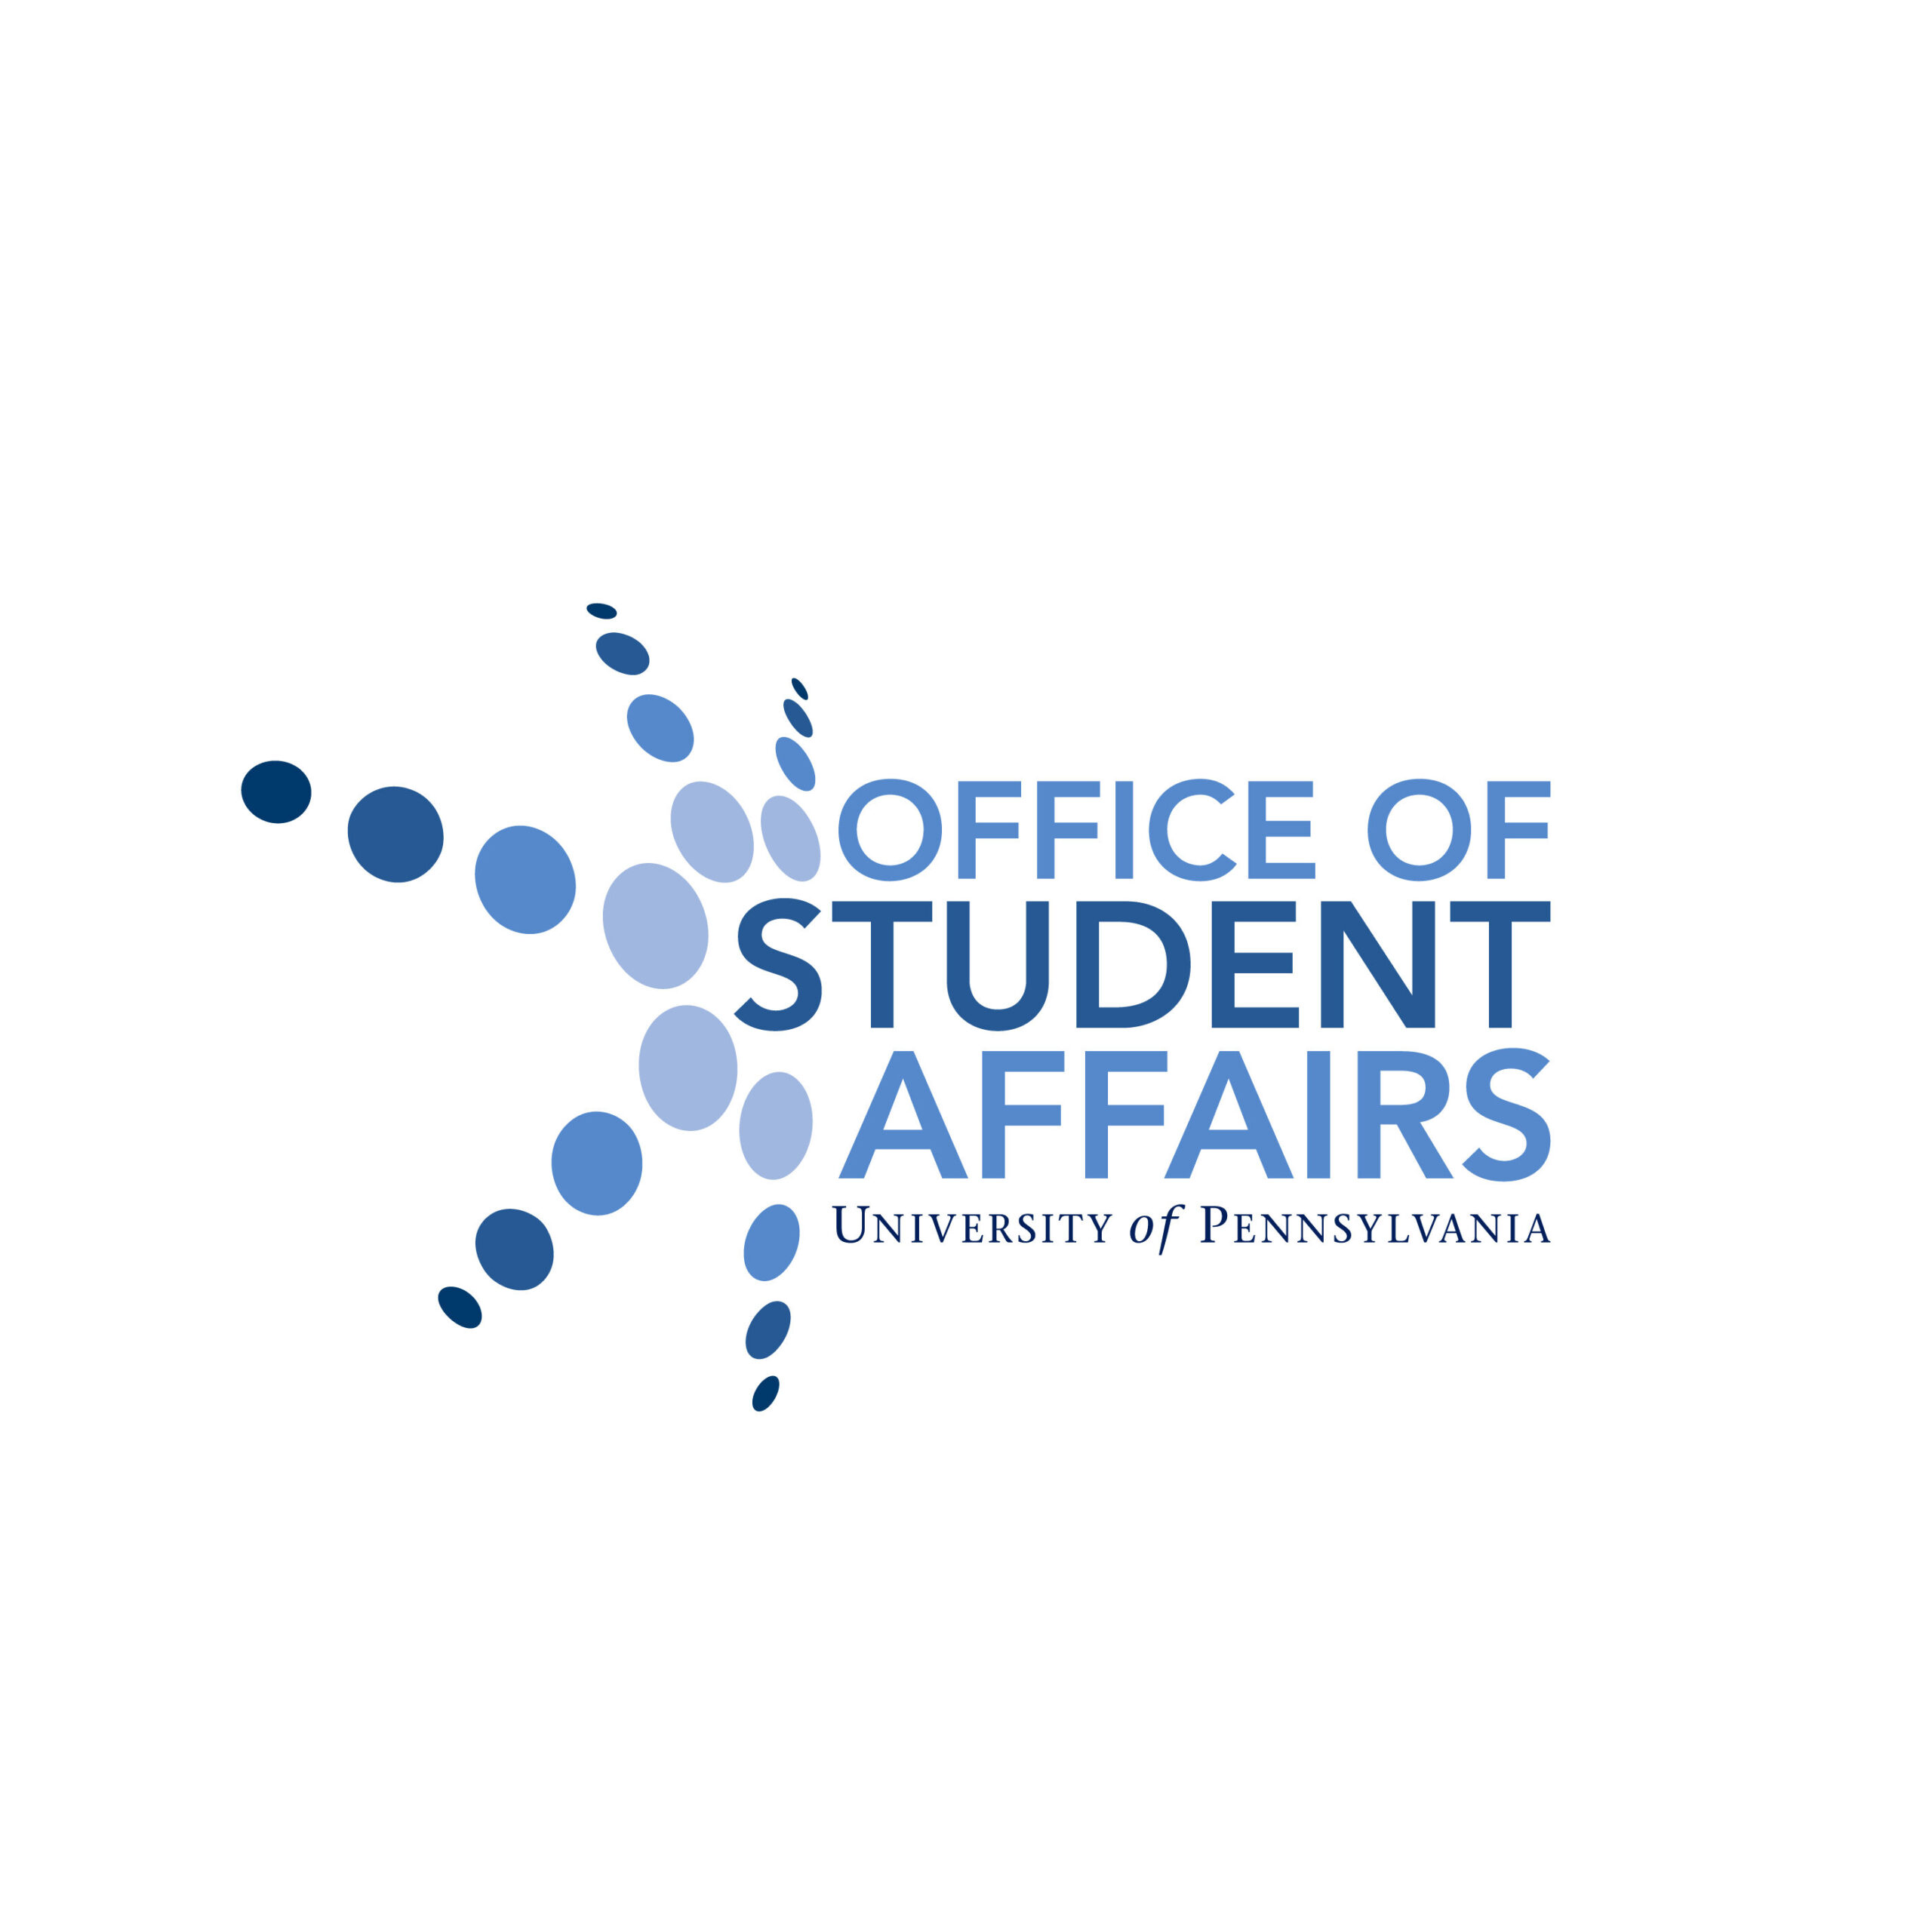 Links to Office of Student Affairs external Website